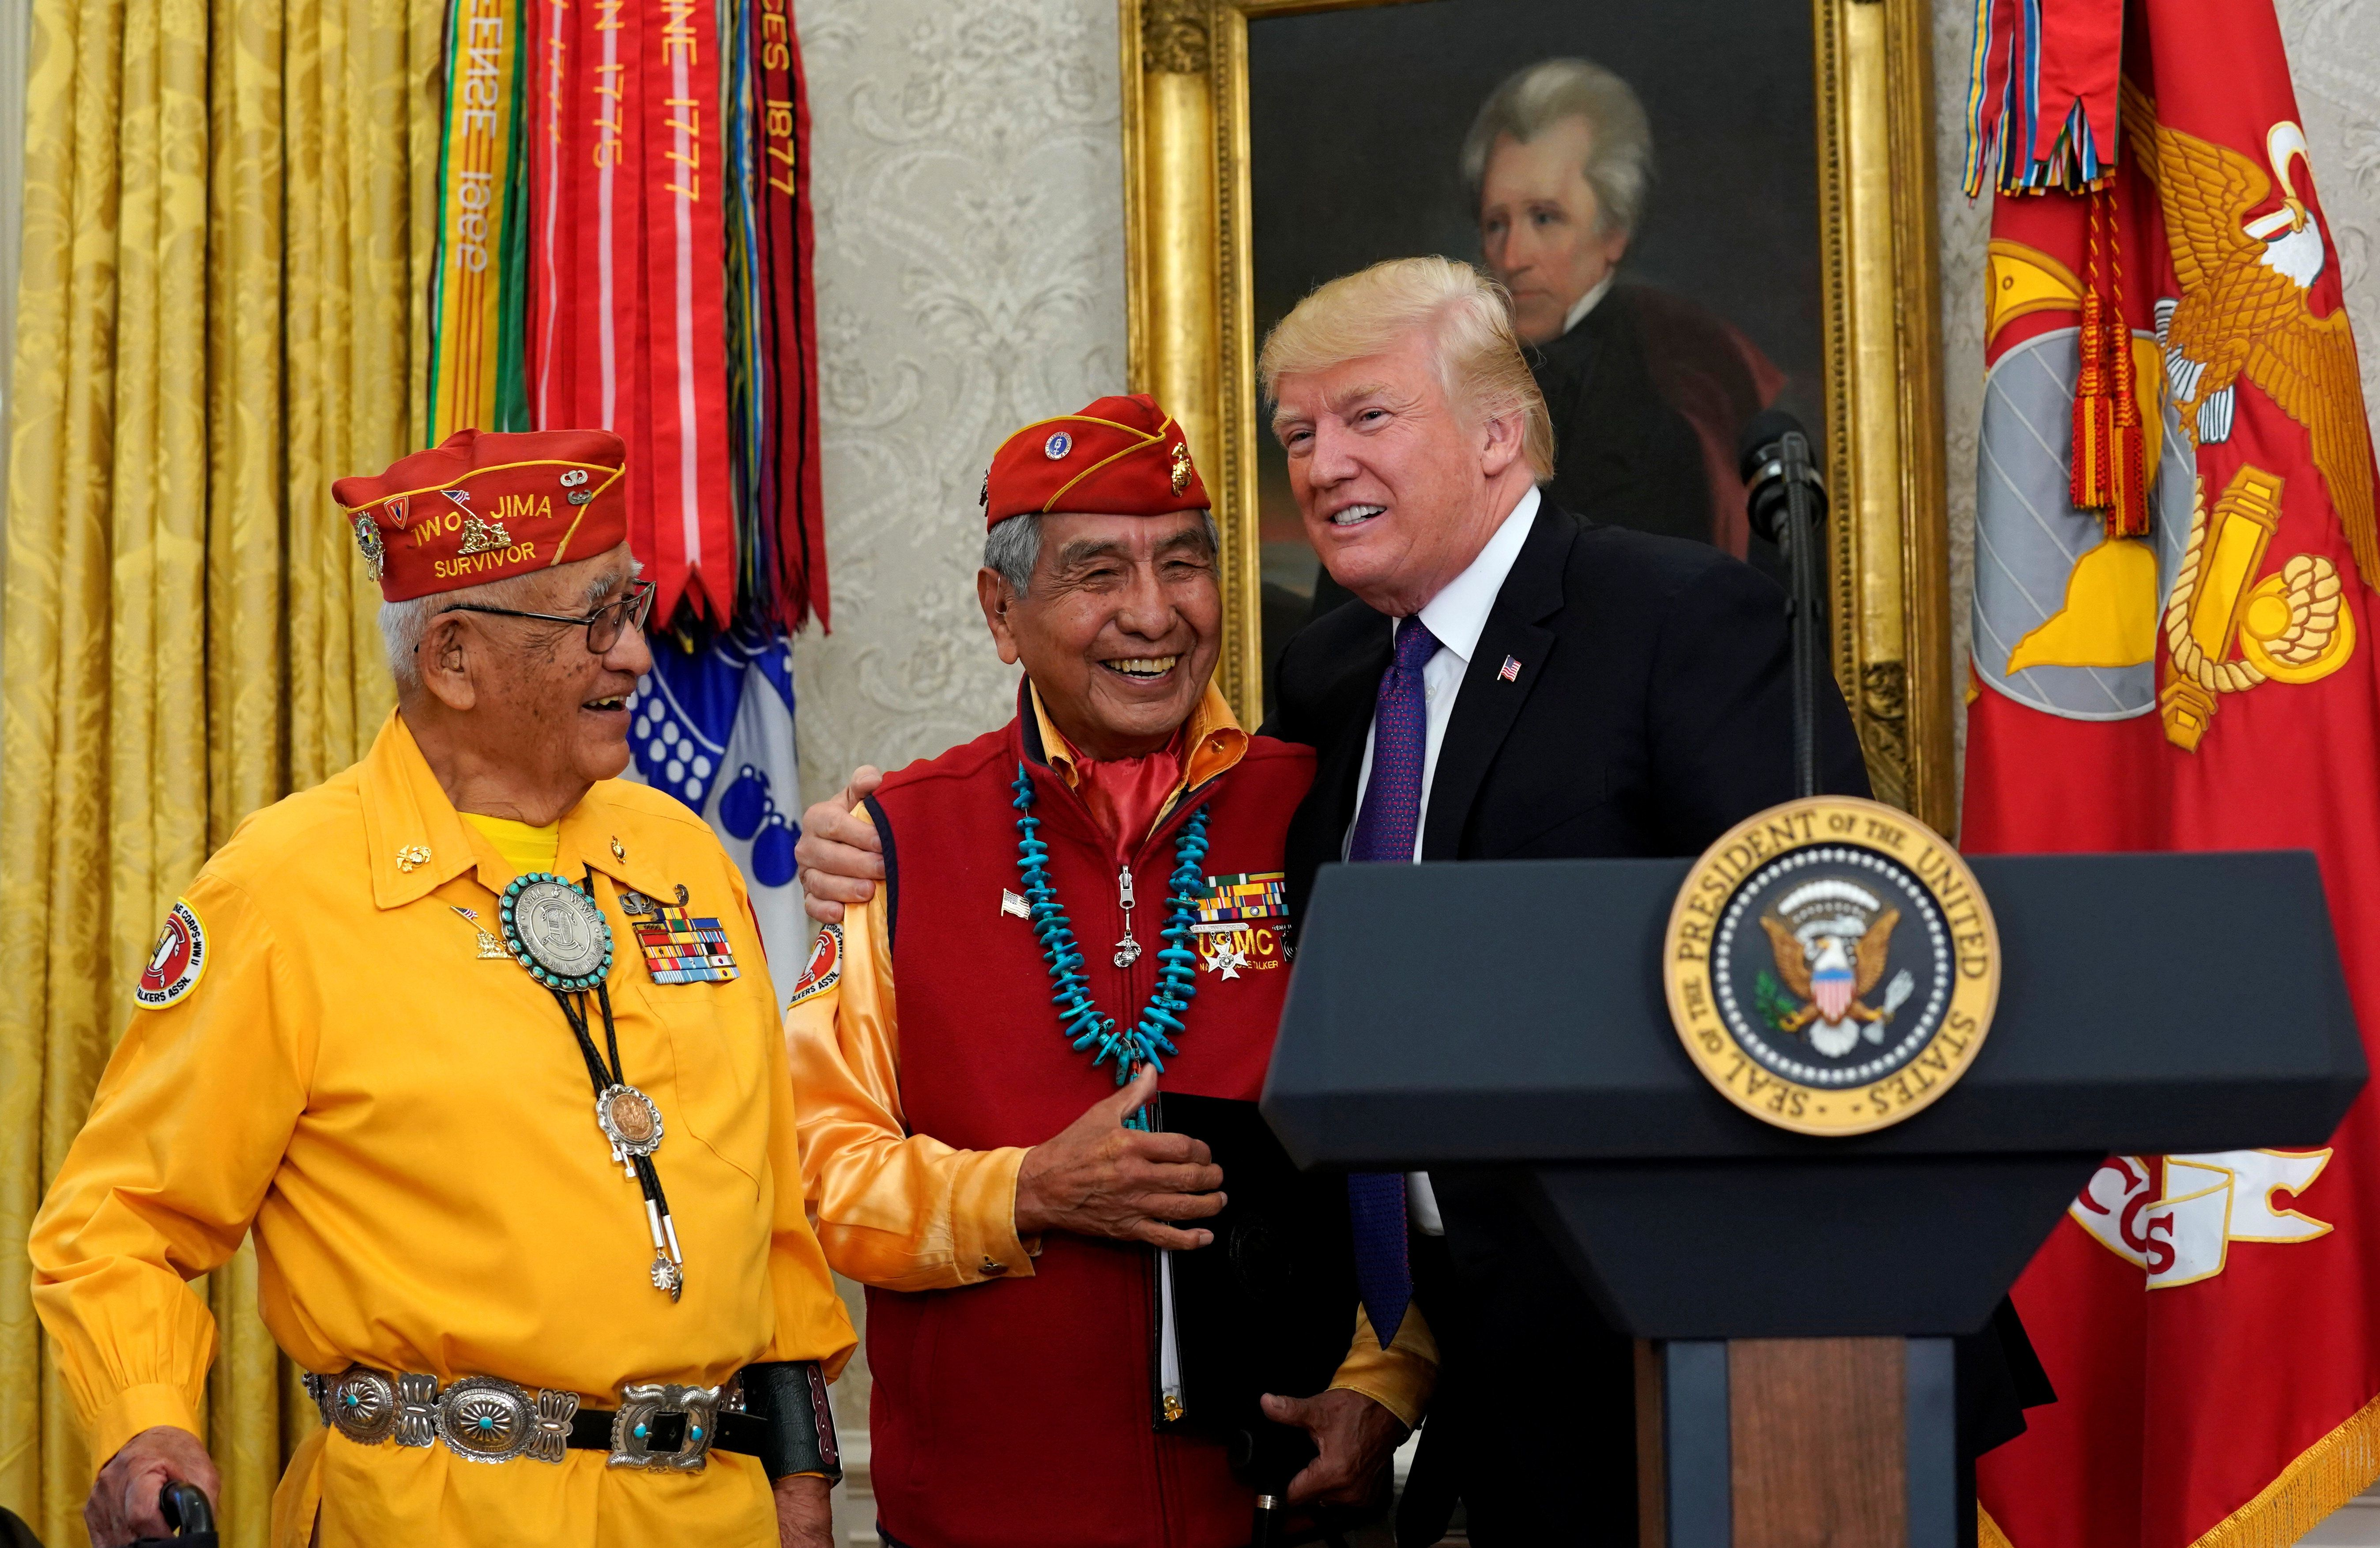 U.S. President Donald Trump hosts an event honouring the Native American code talkers, including Thomas Begay (L) and Peter McDonald, in front of a painting of President Andrew Jackson, at the White House in Washington, U.S., November 27, 2017. REUTERS/Kevin Lamarque